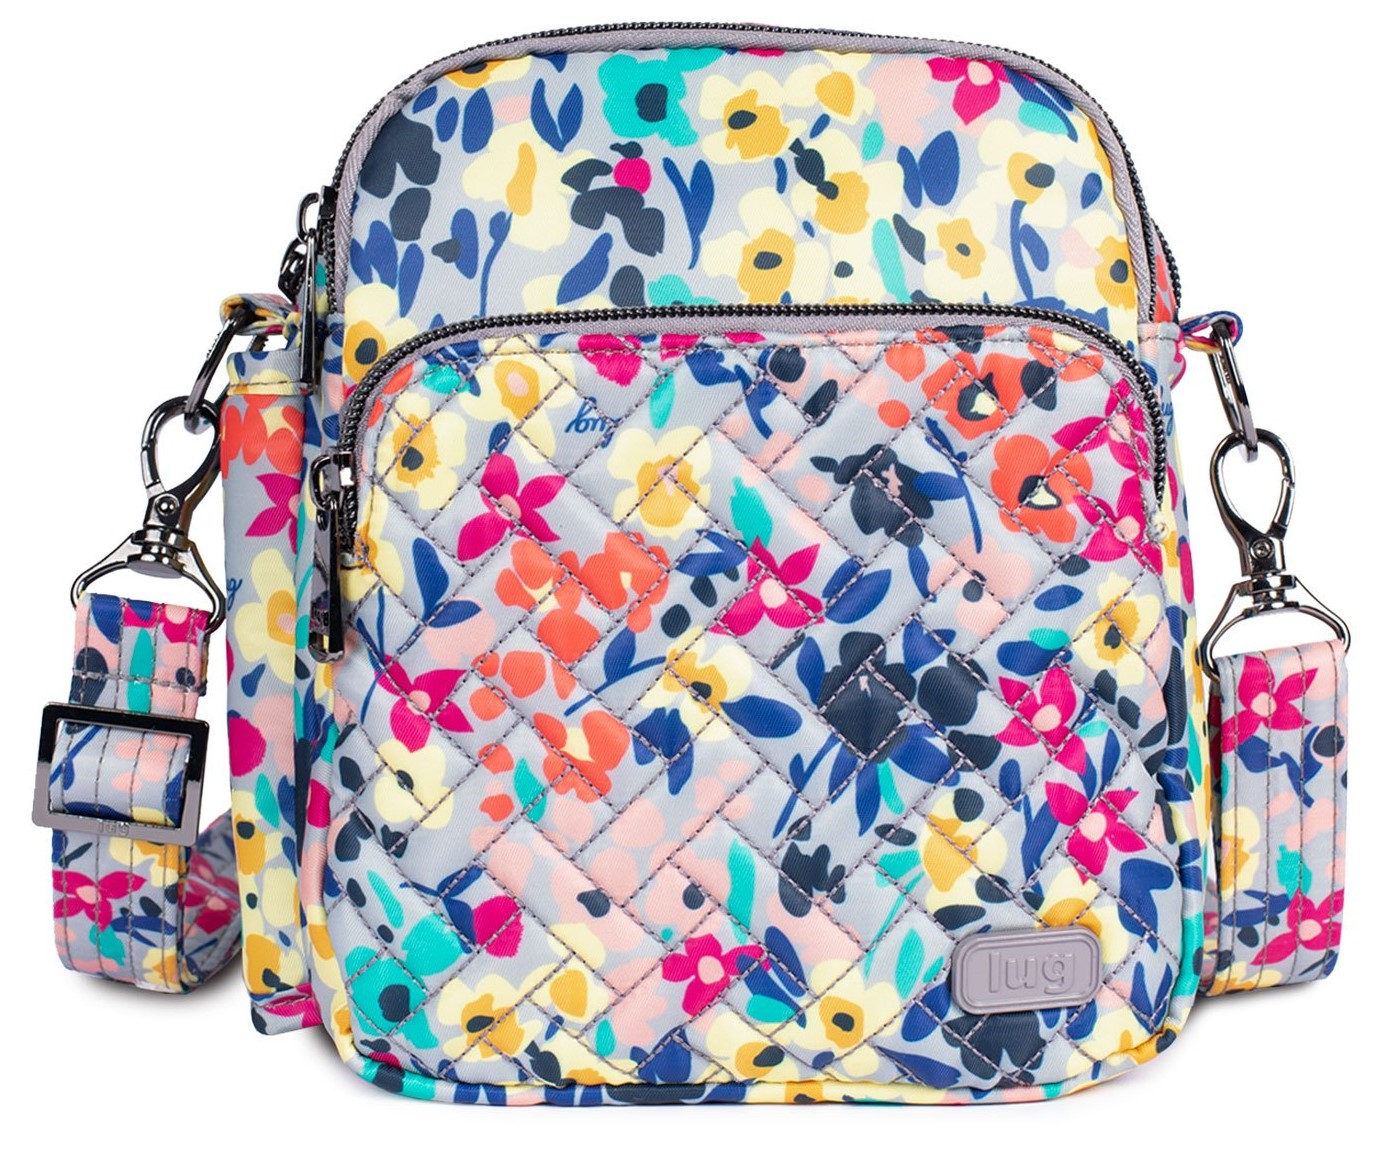 LUG - Can Can 2 - Convertible Crossbody/Belt Bag - Wildflower Multi